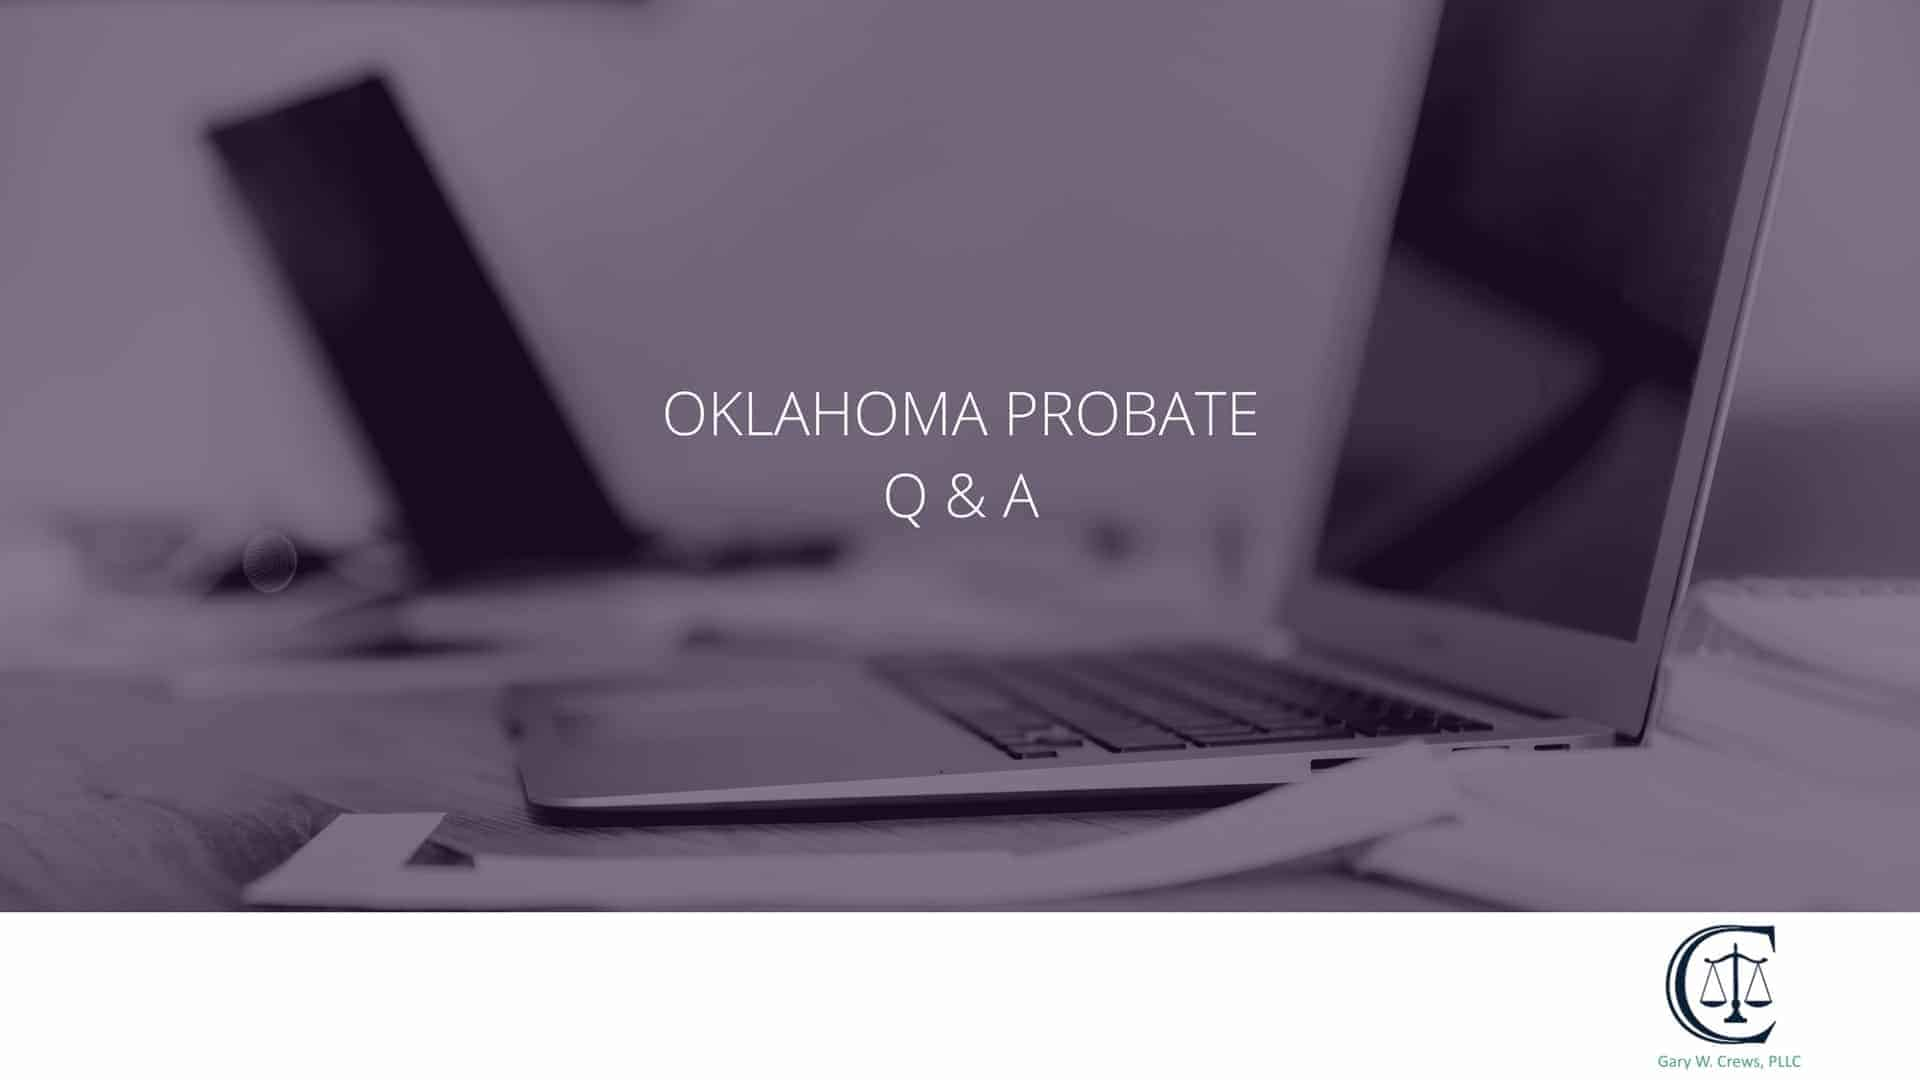 oklahoma probate q & a part 1 - probate Qa - Oklahoma Probate Q & A Part 1